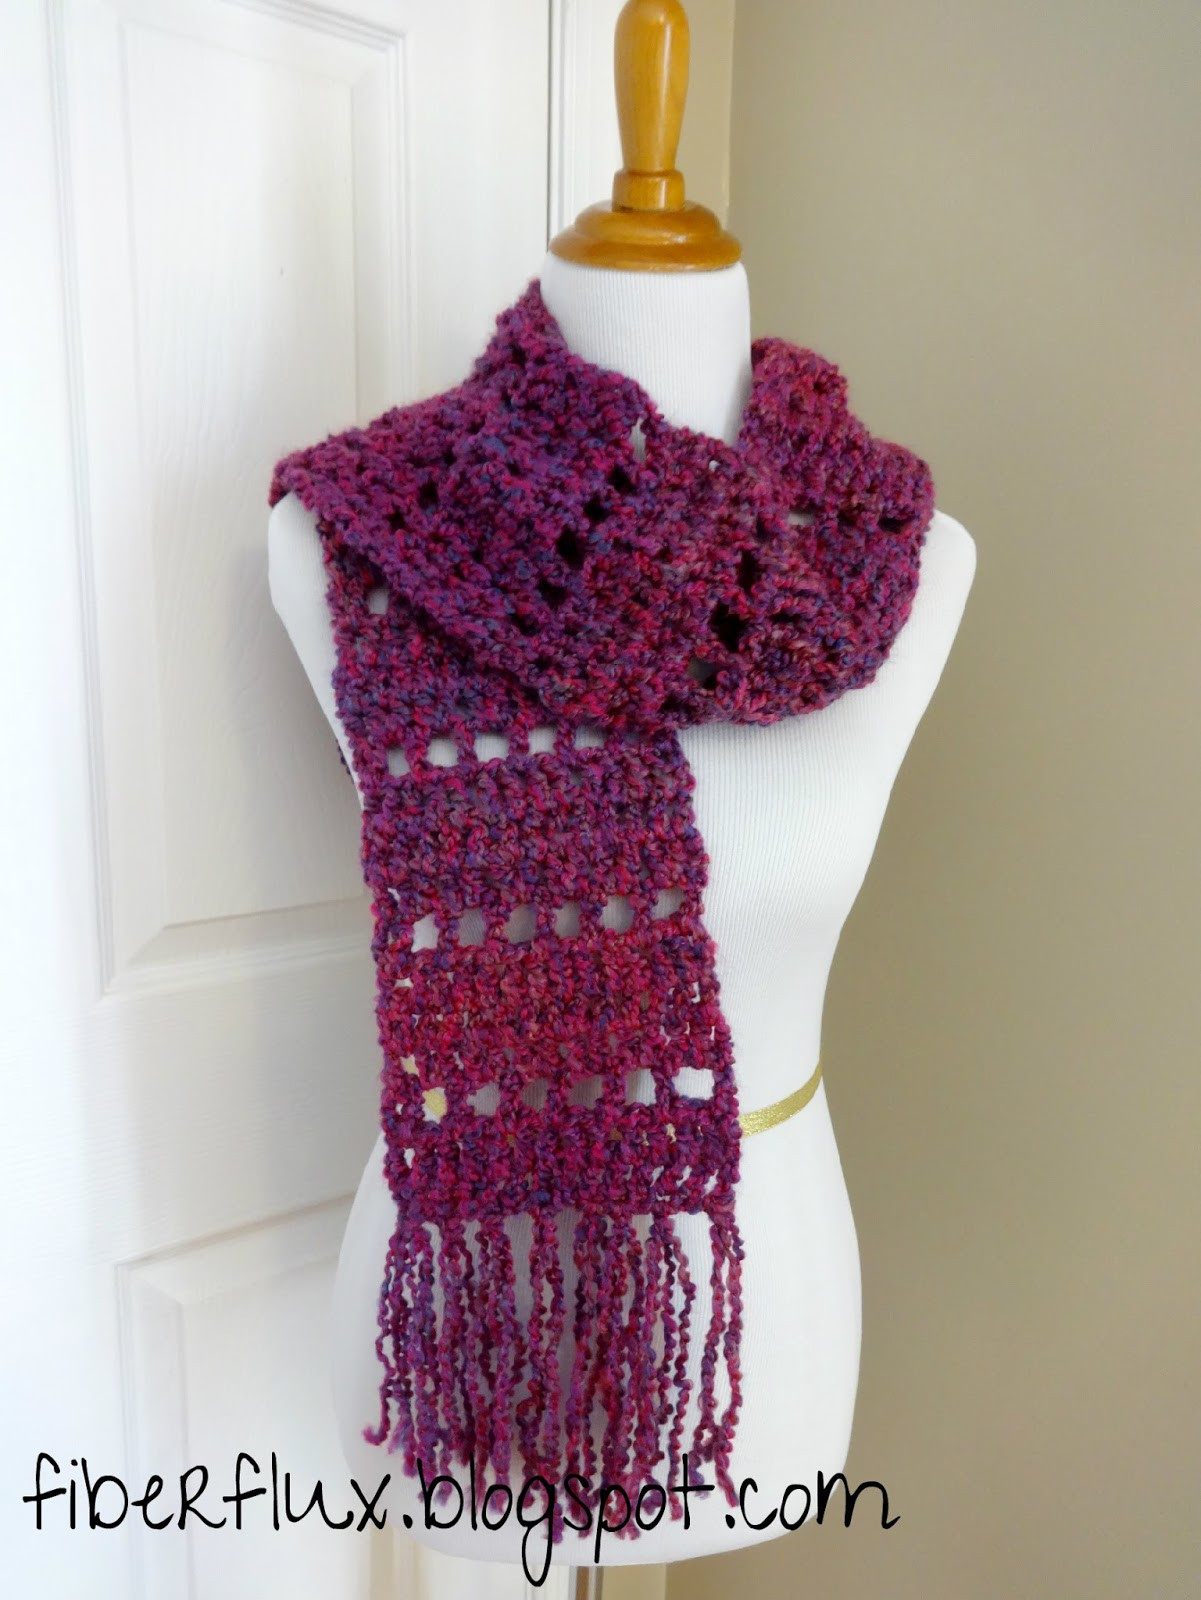 Free Patterns Inspirational Fiber Flux Free Crochet Pattern Mulberry Scarf Of Unique 49 Photos Free Patterns